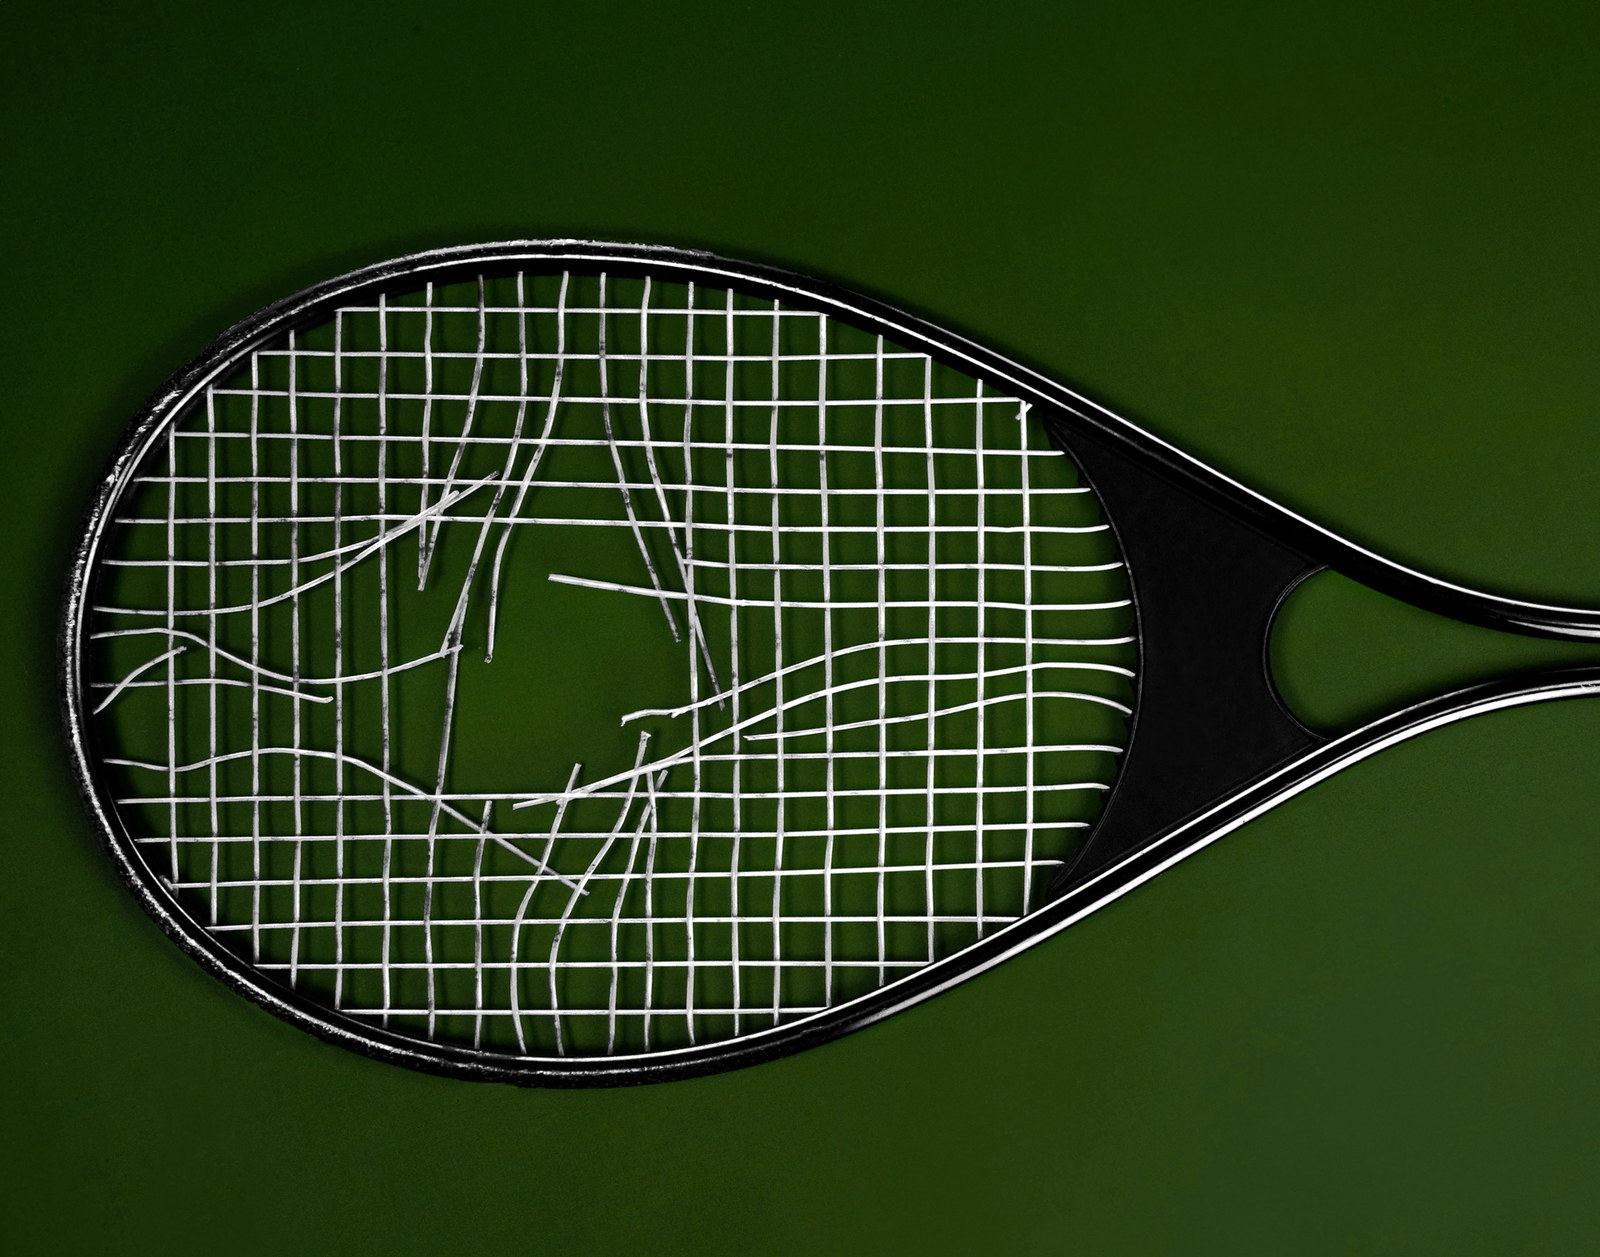 Buzzfeed John Templon Tennis Racquet Diagrams Fame Hall Inductee International Covert Messages With Sicilian Gamblers And Suspicious Matches At Wimbledon Leaked Files Expose Match Fixing Evidence That Authorities Have Kept